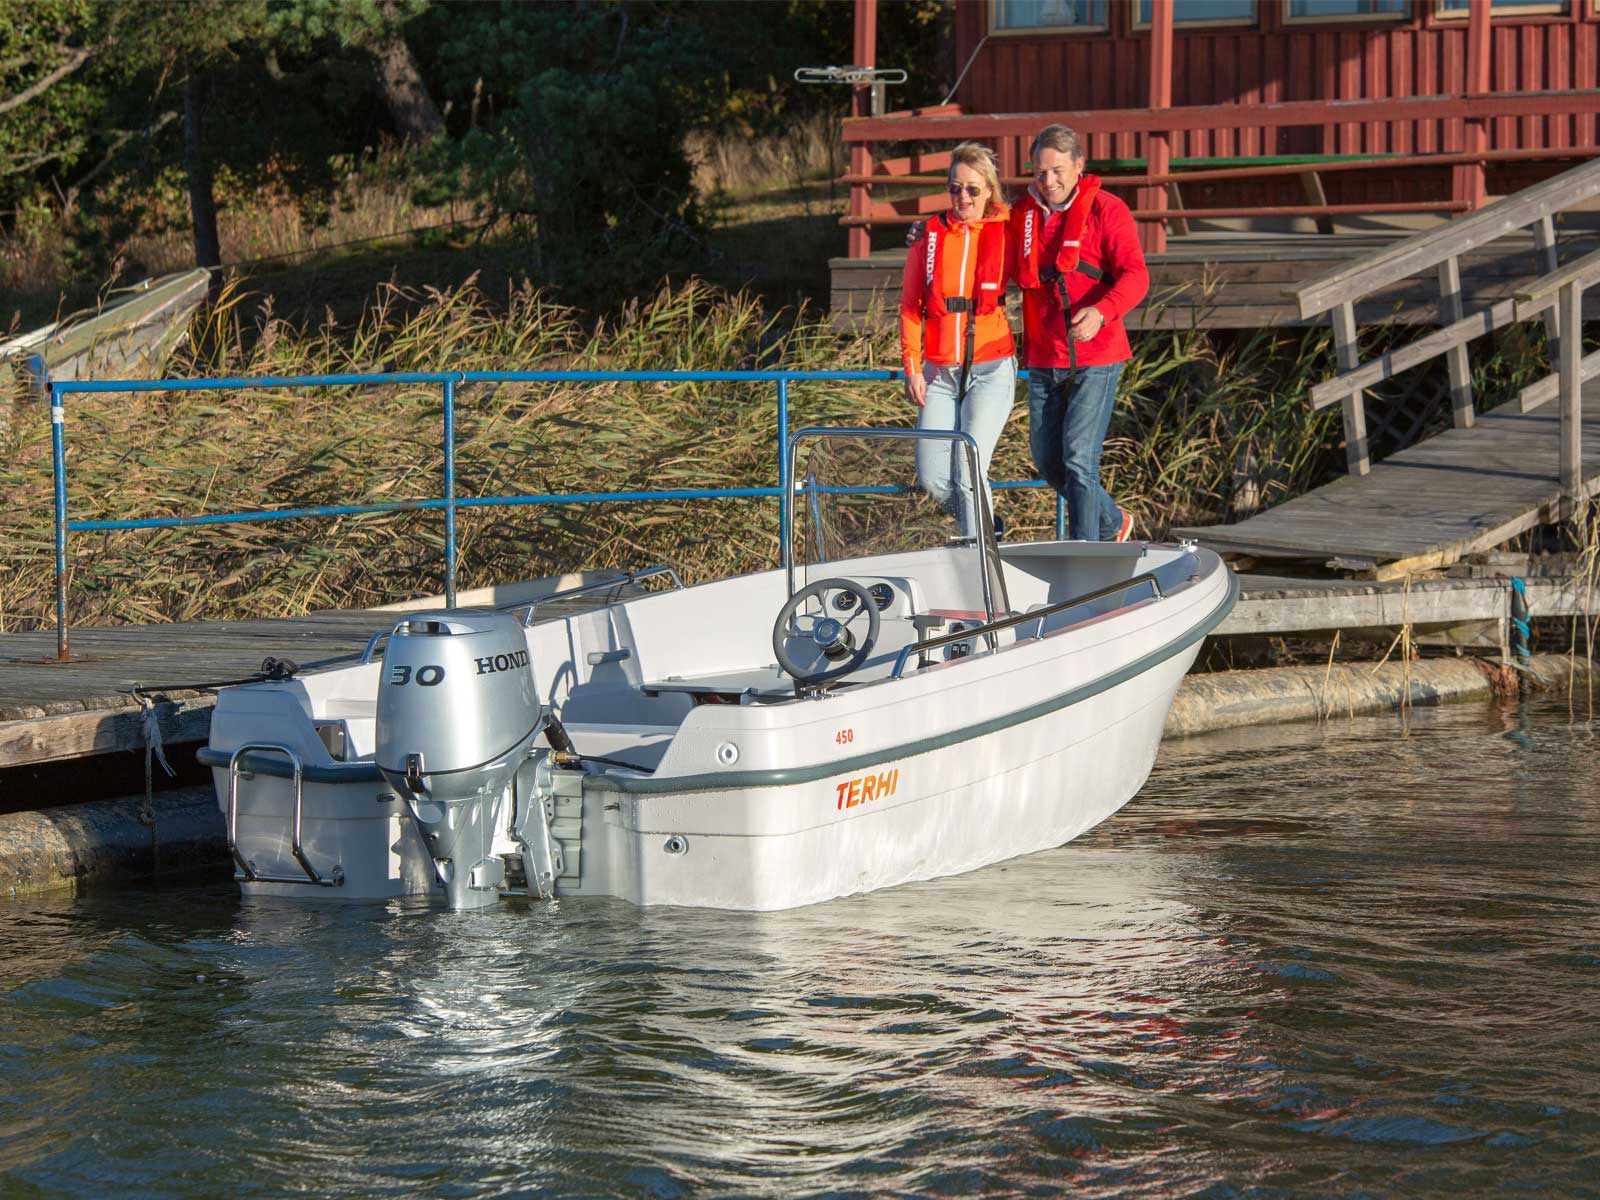 Terhi 450 C   Boat Solutions, Utting am Ammersee